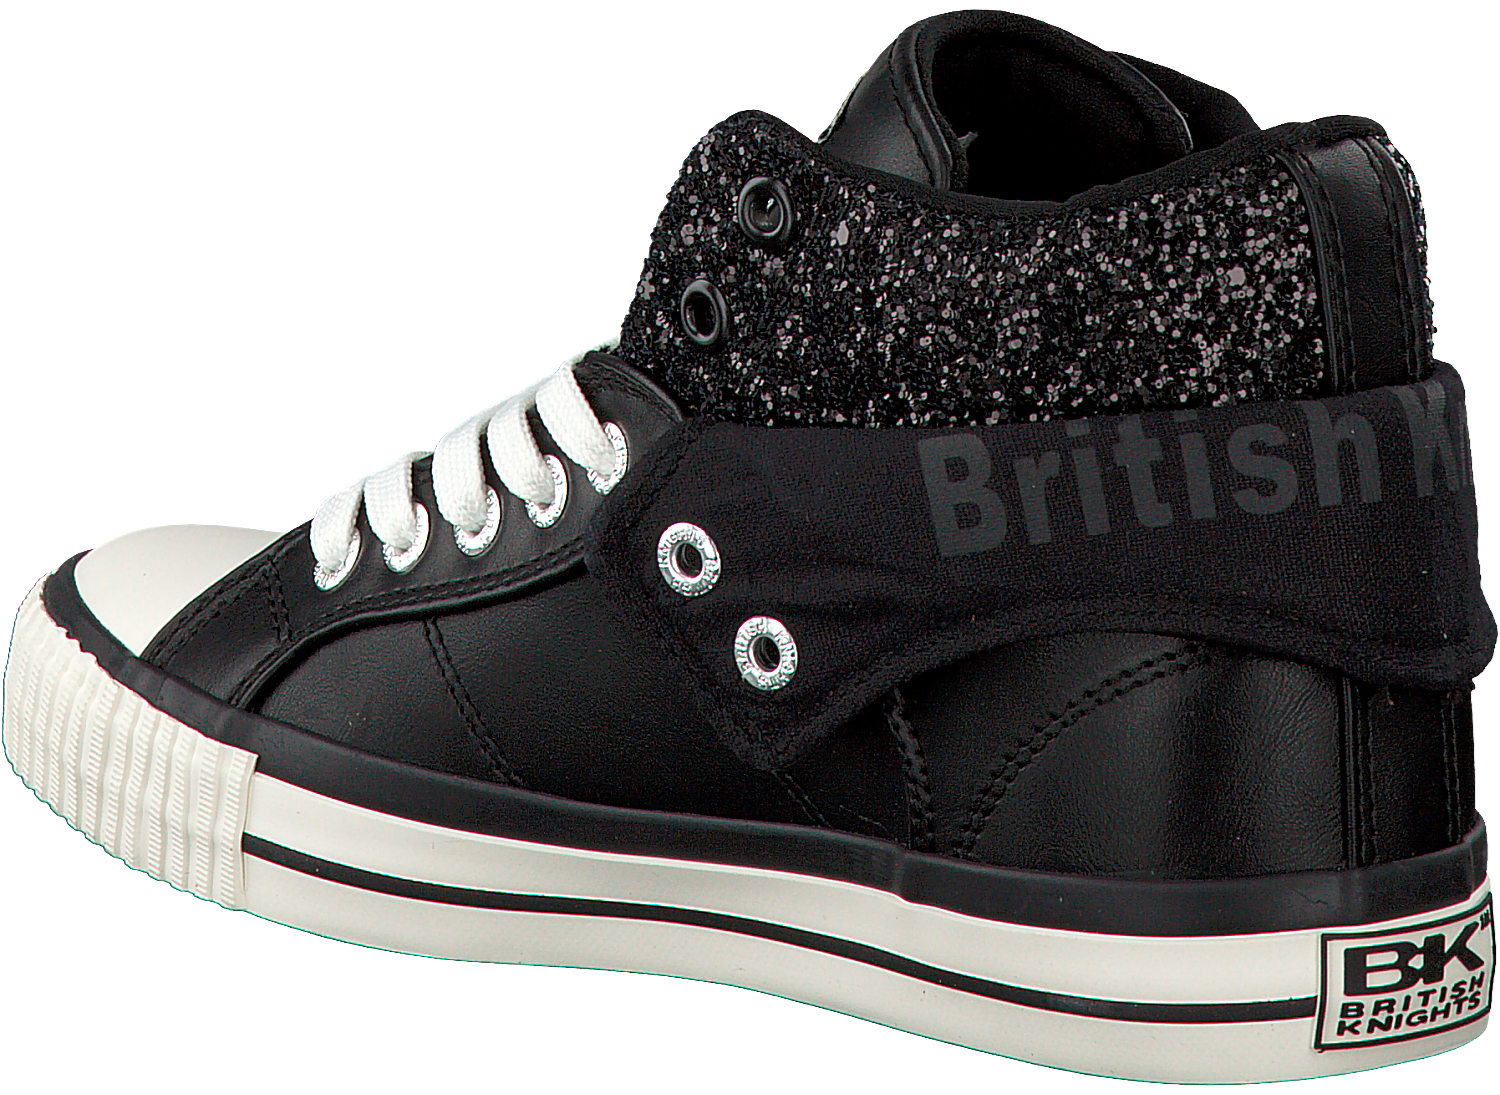 f0f9da8aaa7 Zwarte BRITISH KNIGHTS Sneakers ROCO. BRITISH KNIGHTS. -30%. Previous